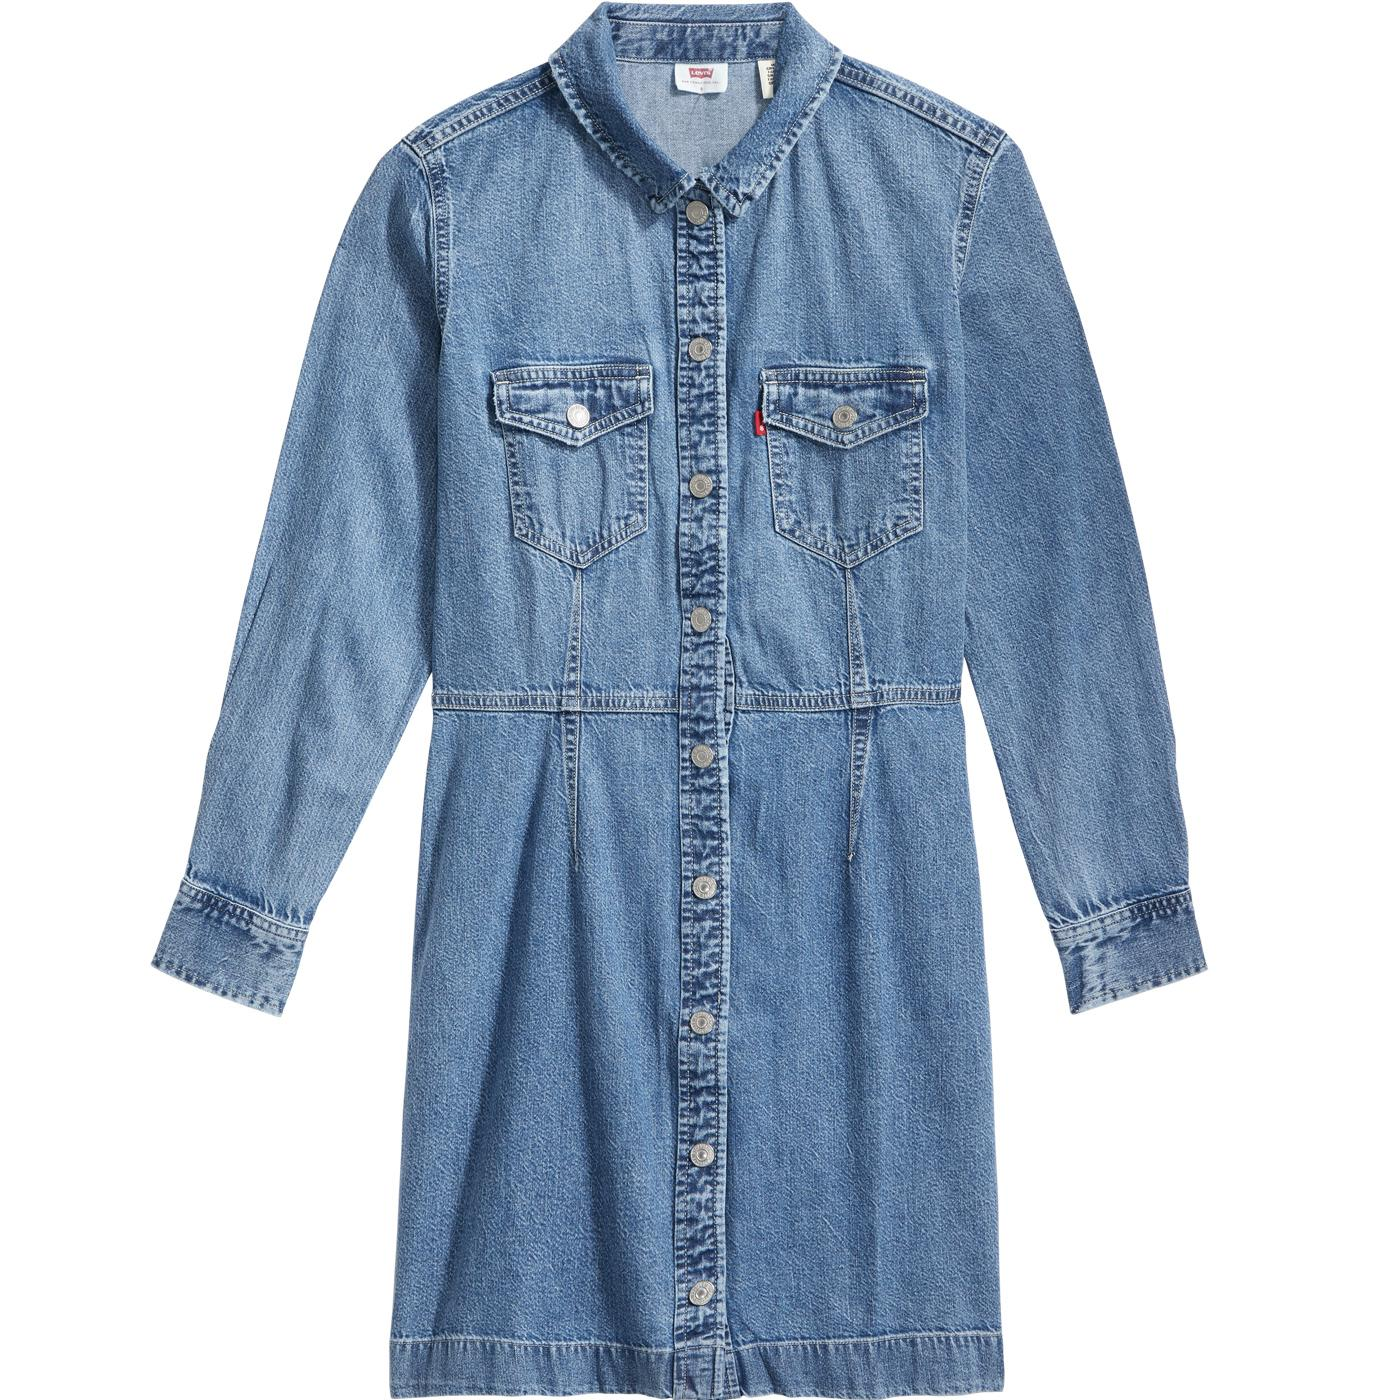 Ellie LEVI'S WOMENS Retro 70s Denim Dress in Blue